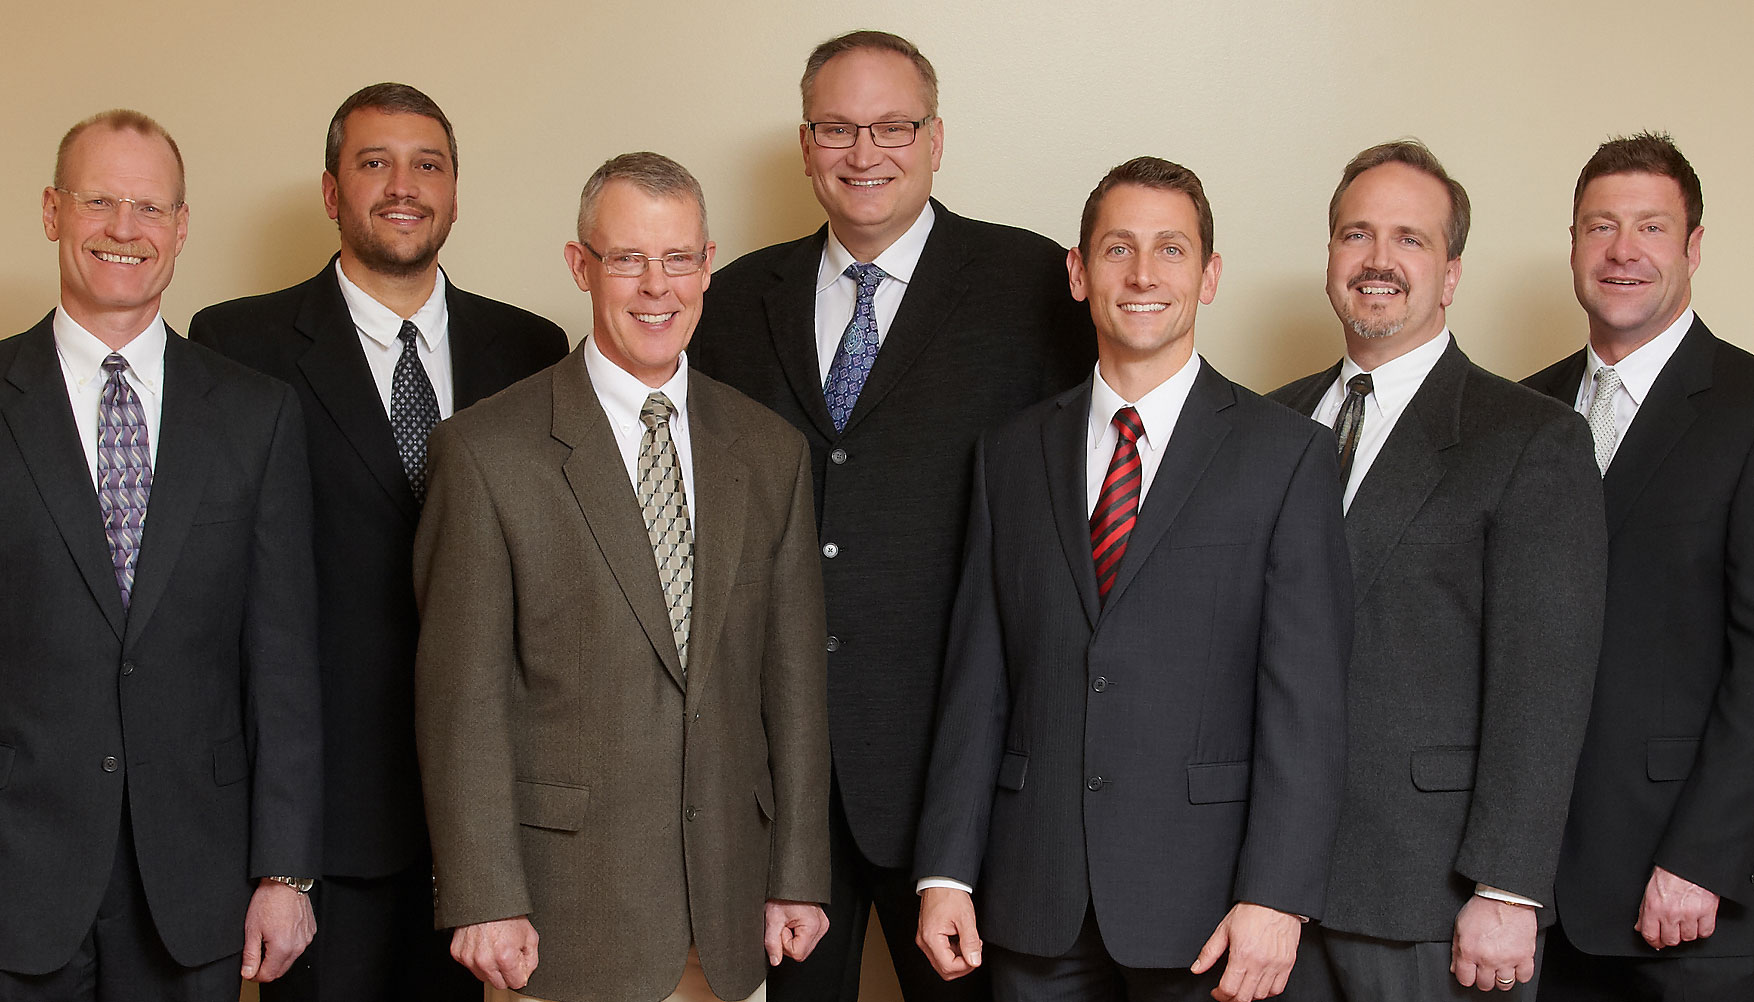 New West employs seven board-certified orthopaedic surgeons, and one certified Sports Medicine physician. They include, left to right: Daniel Slawski, David Huebner, Bernard Keown, Heber Crockett, Jim Mahalek, Nicholas Mansuetta and Ian Weber. Not pictured is Nolan May.